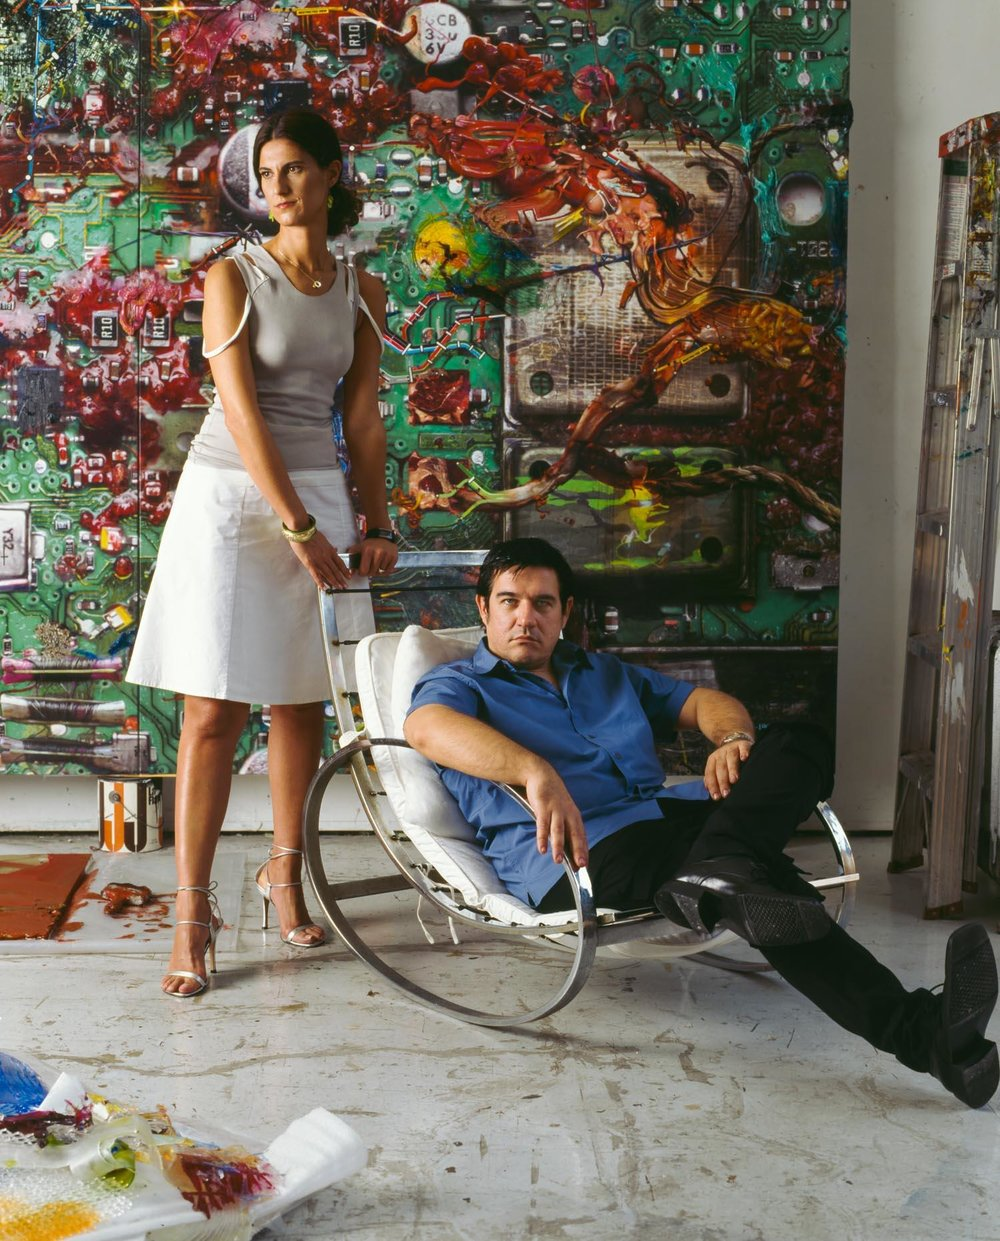 Galia with her husband, artist, Fabian Marcaccio, in front of his artwork commissioned for Documenta X in 2002.